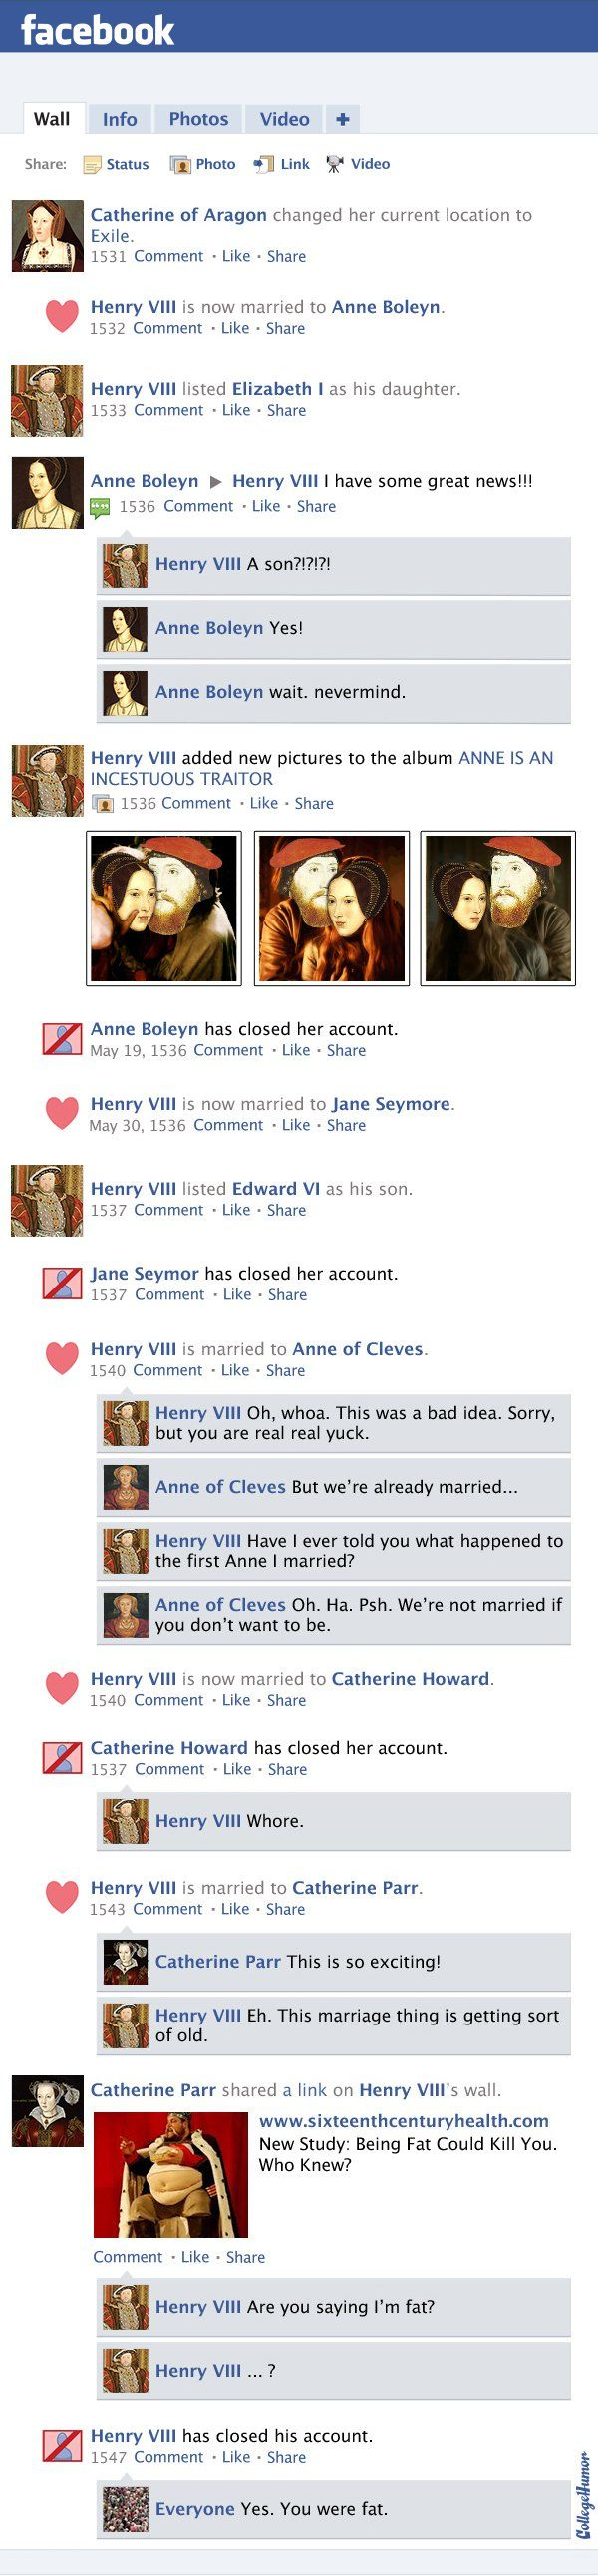 Facebook News Feed History of the World: Protestant Reformation Through Queen Elizabeth I (Page 2) - CollegeHumor Post